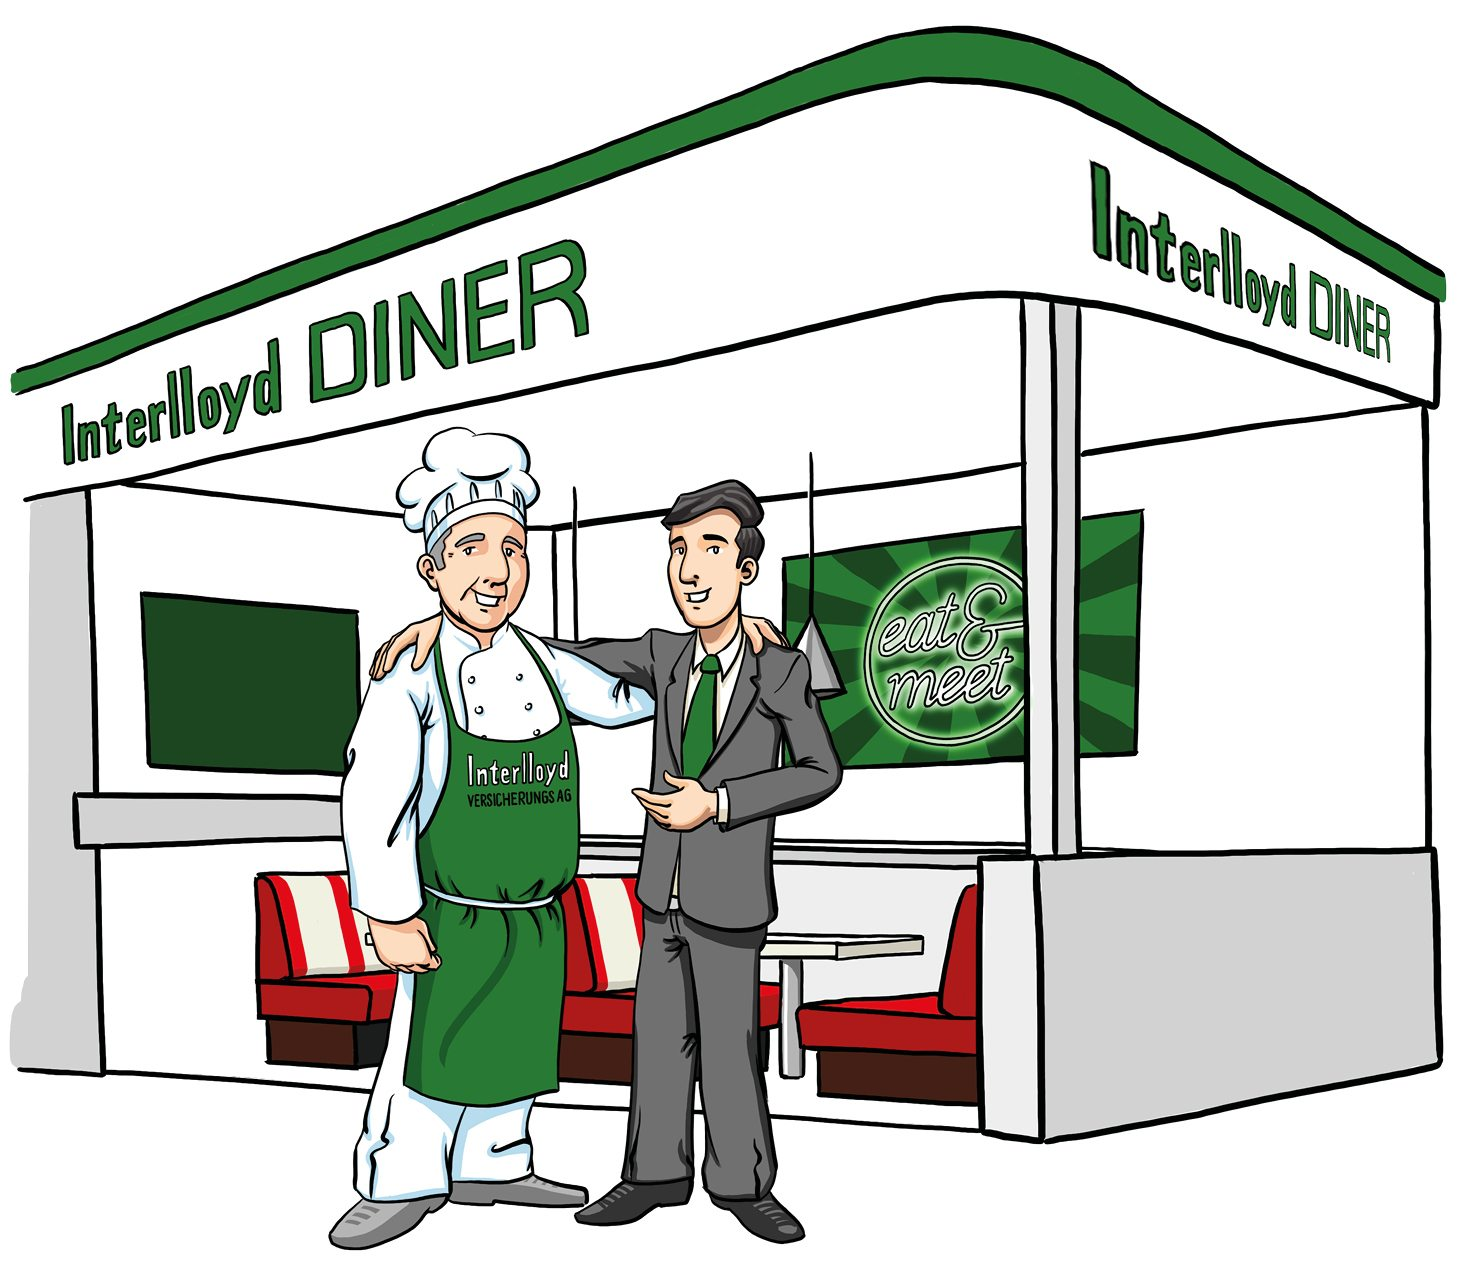 Interlloyd-Diner-DKM2020